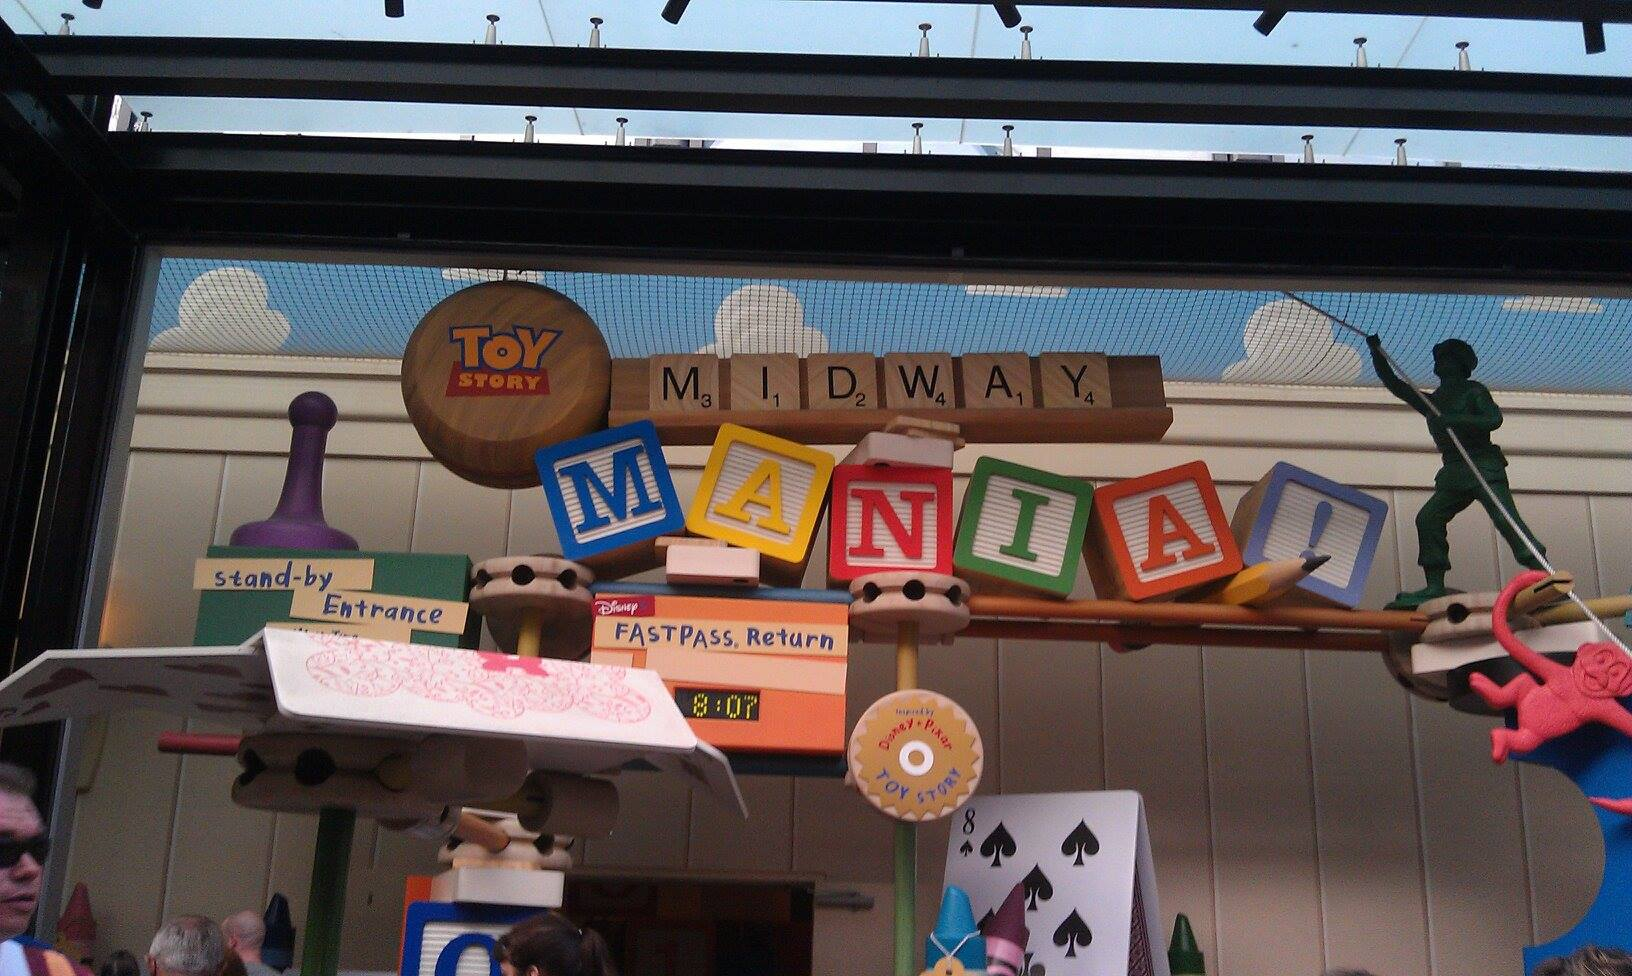 Wordless Wednesday: Toy Story and More Toy Story!